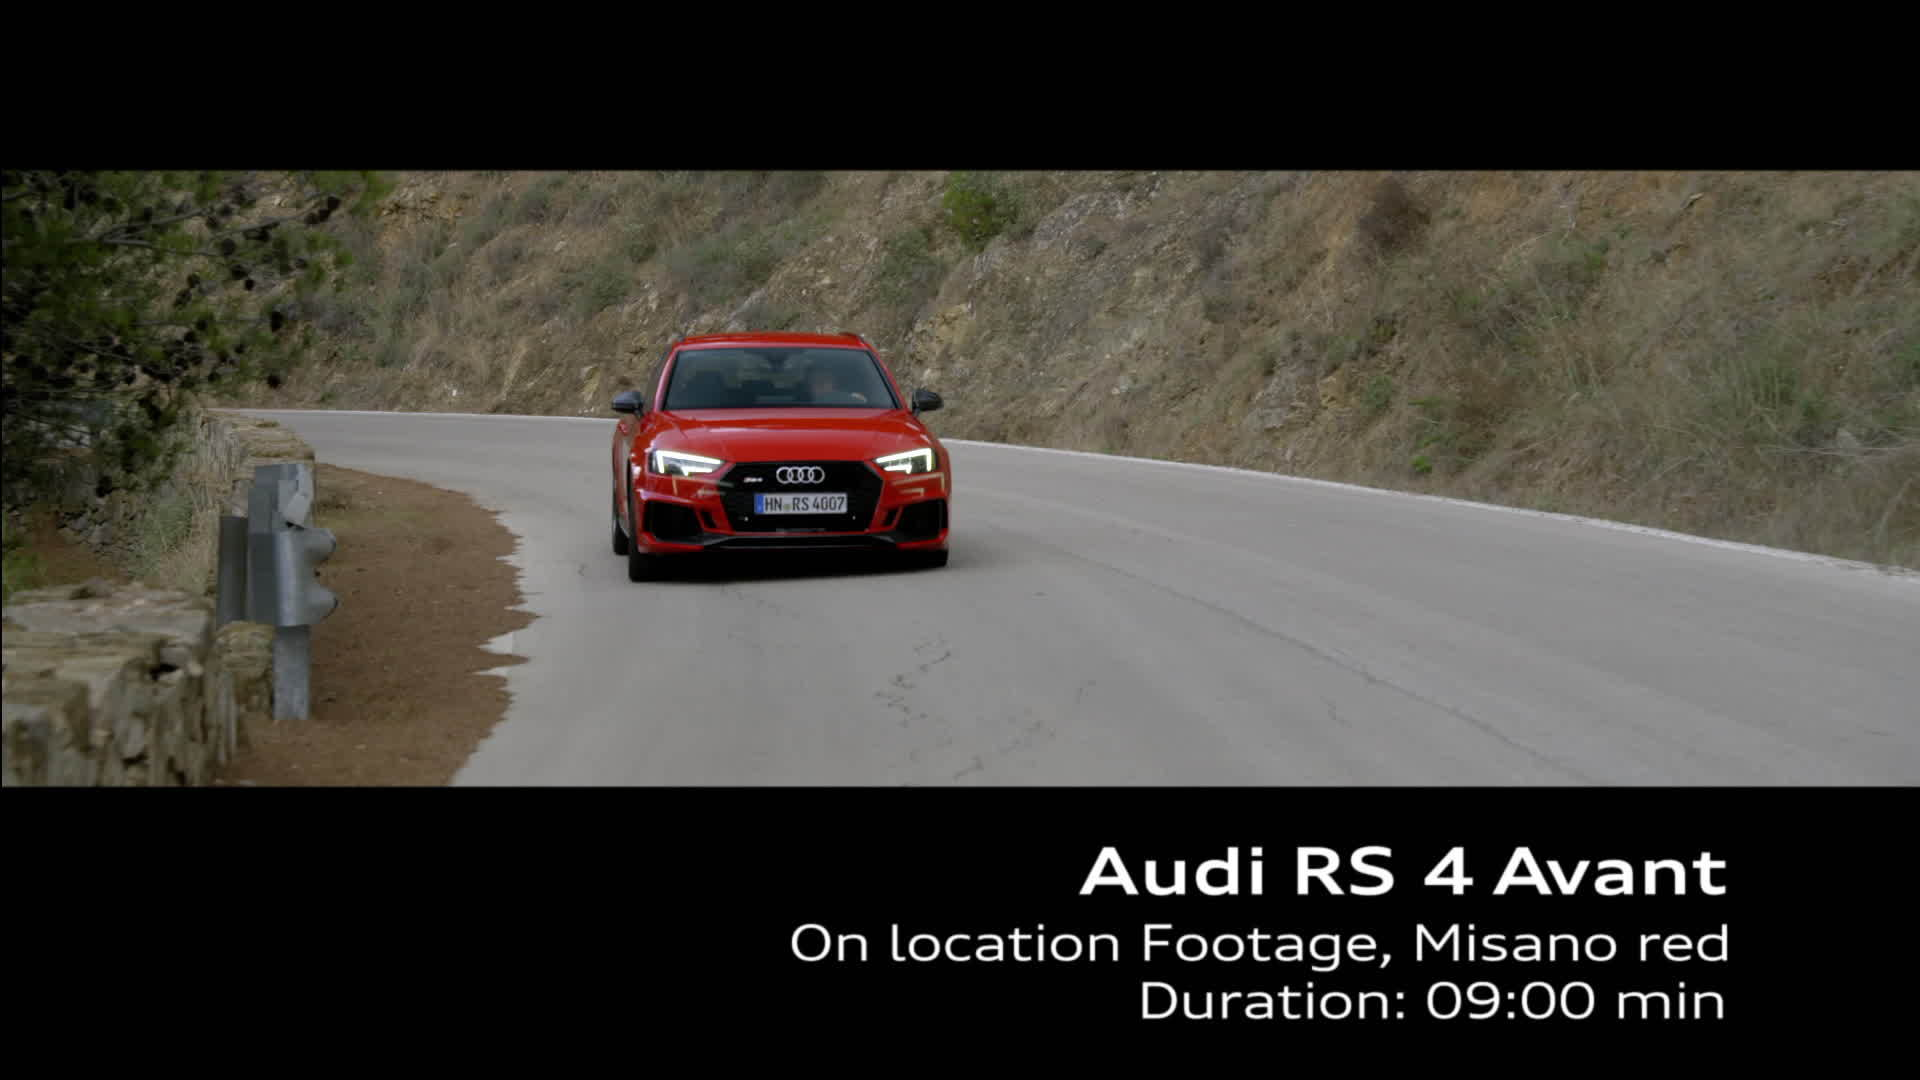 Audi RS 4 Footage on location Misano Red